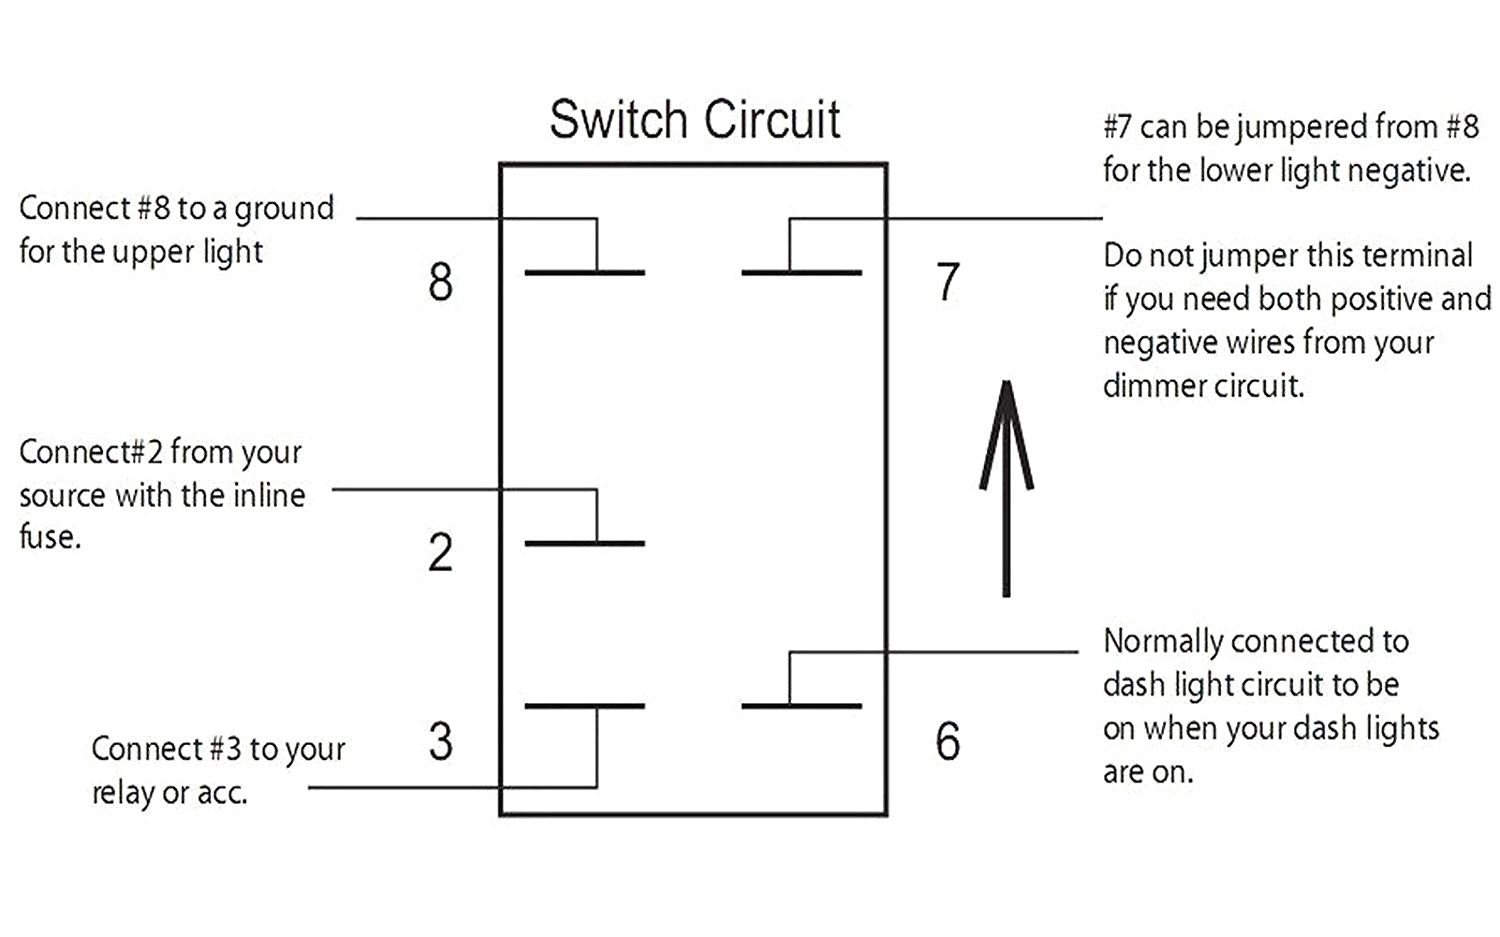 12 Volt Rocker Switch With Light Wiring Diagram from i.pinimg.com